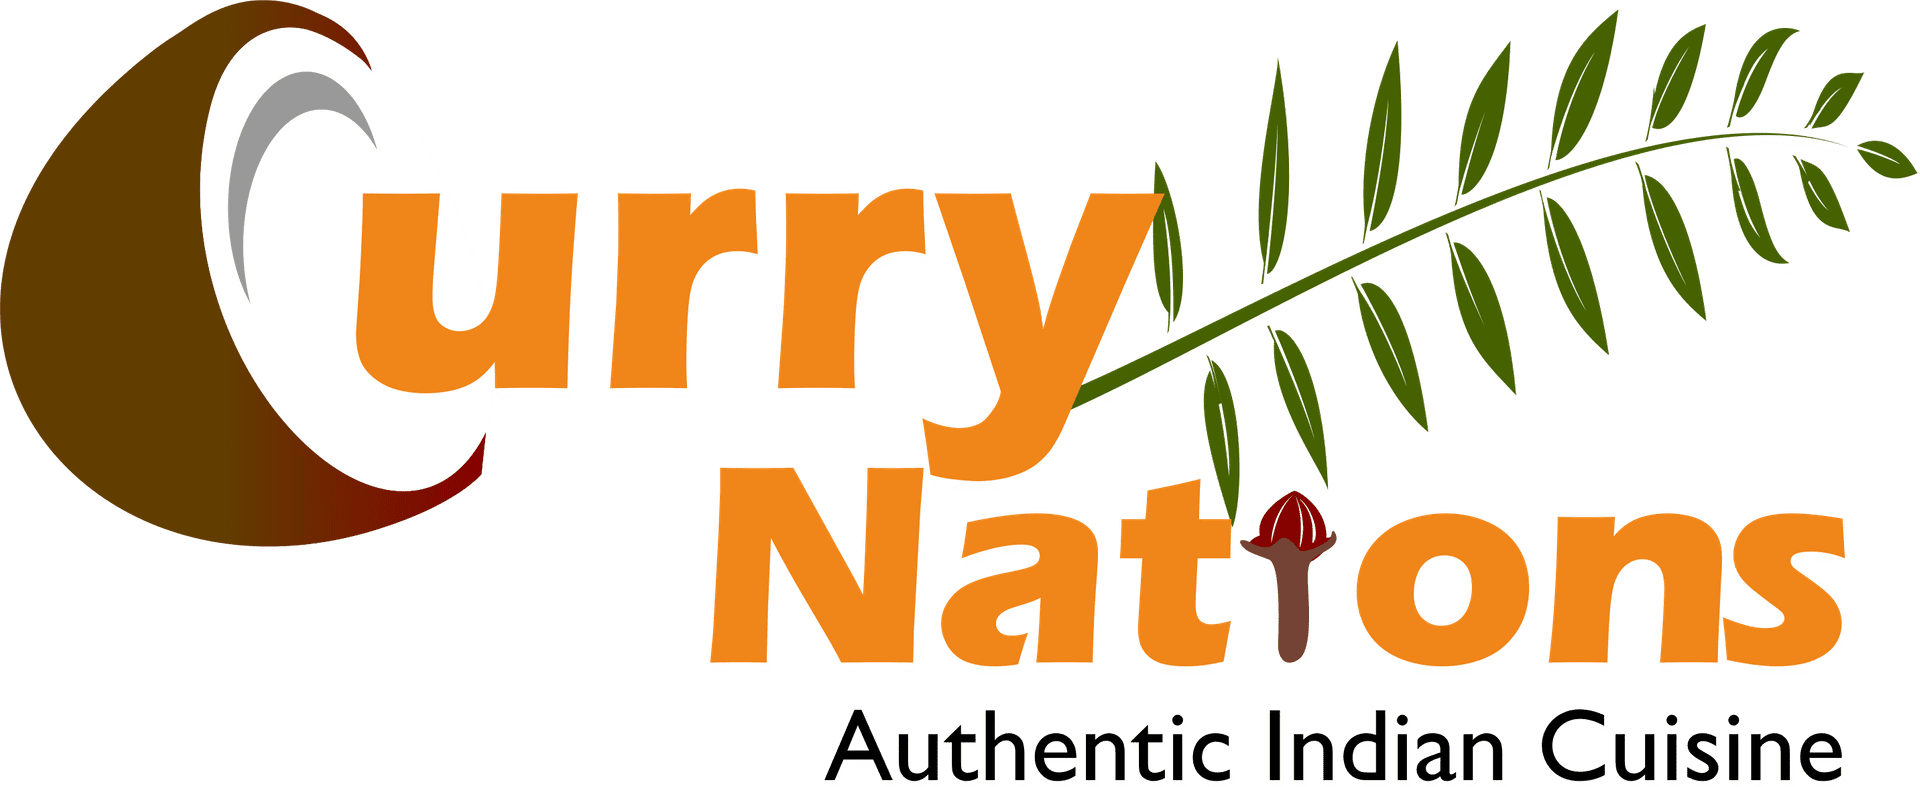 Curry Nations image